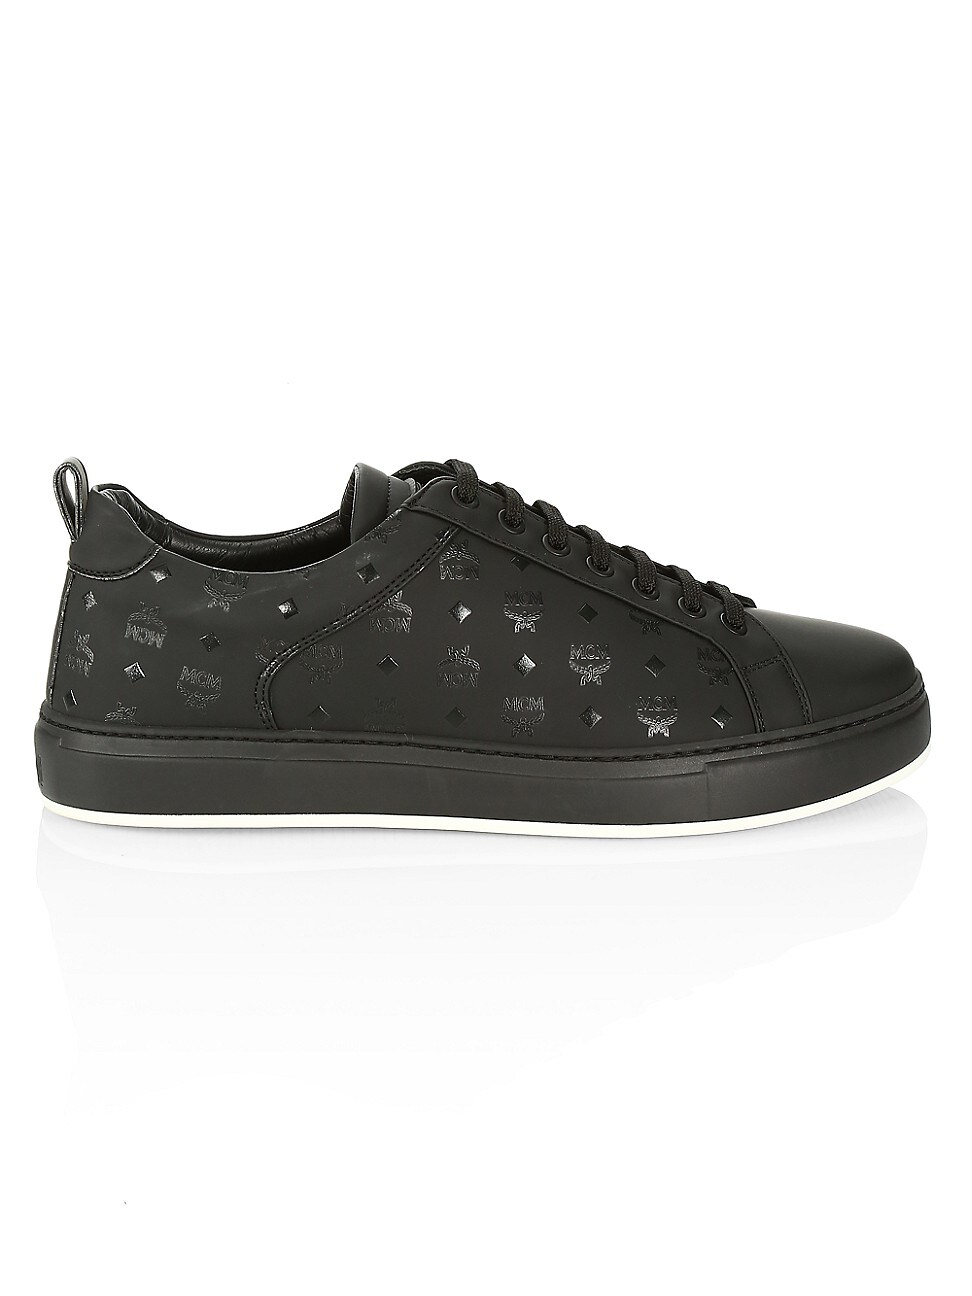 MCM MEN'S LOGO GROUP M LEATHER SNEAKERS